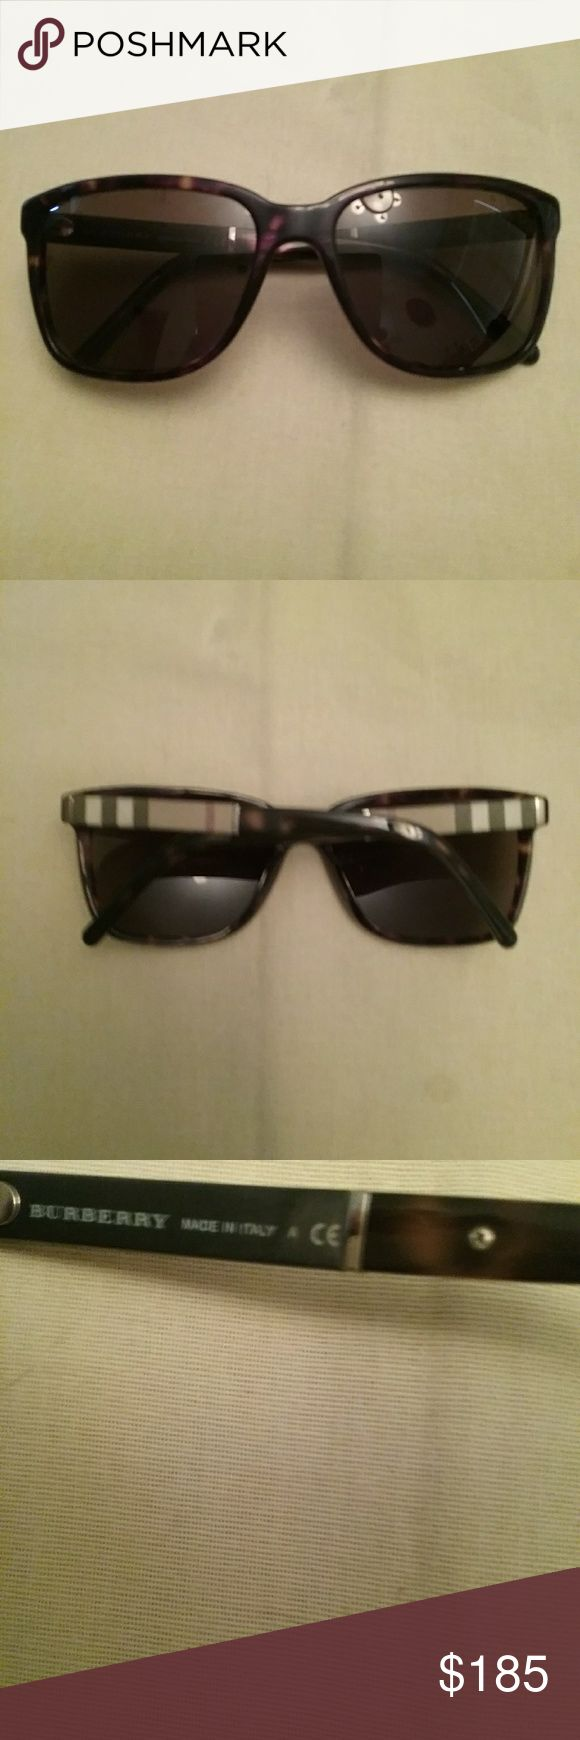 Authentic Burberry Sunglasses Burberry Sunglasses only worn one time they are in excellent condition and there are no scratches on them. They have the Burberry logo on the outside of them as shown above and they are very cute on. Color is Tortoise Shell brown. Burberry Accessories Sunglasses